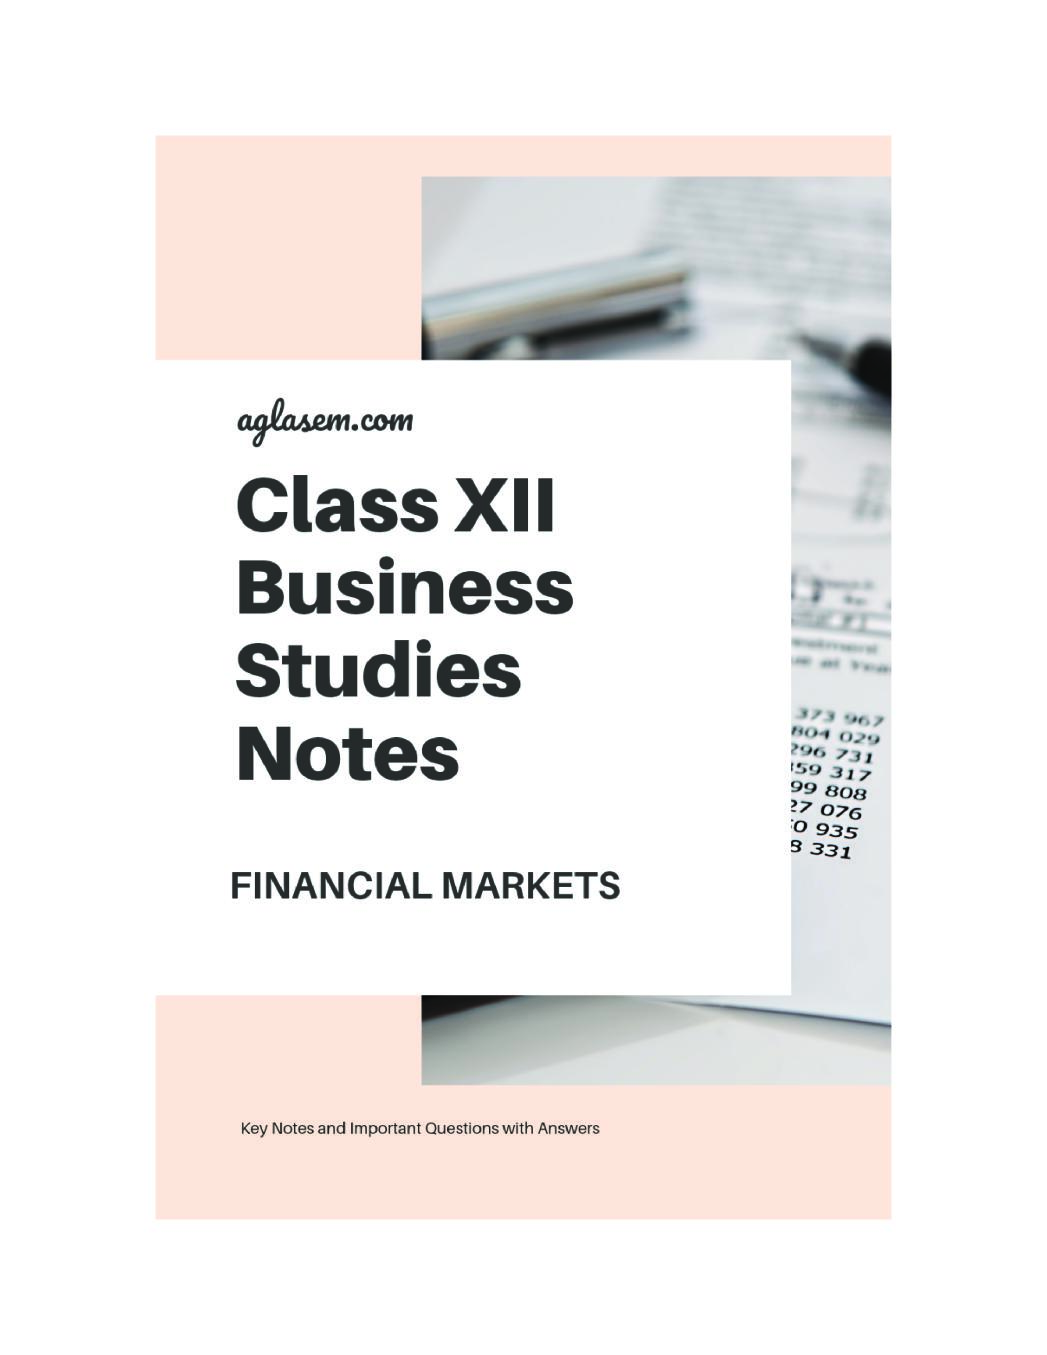 Class 12 Business Studies Notes for Financial Markets